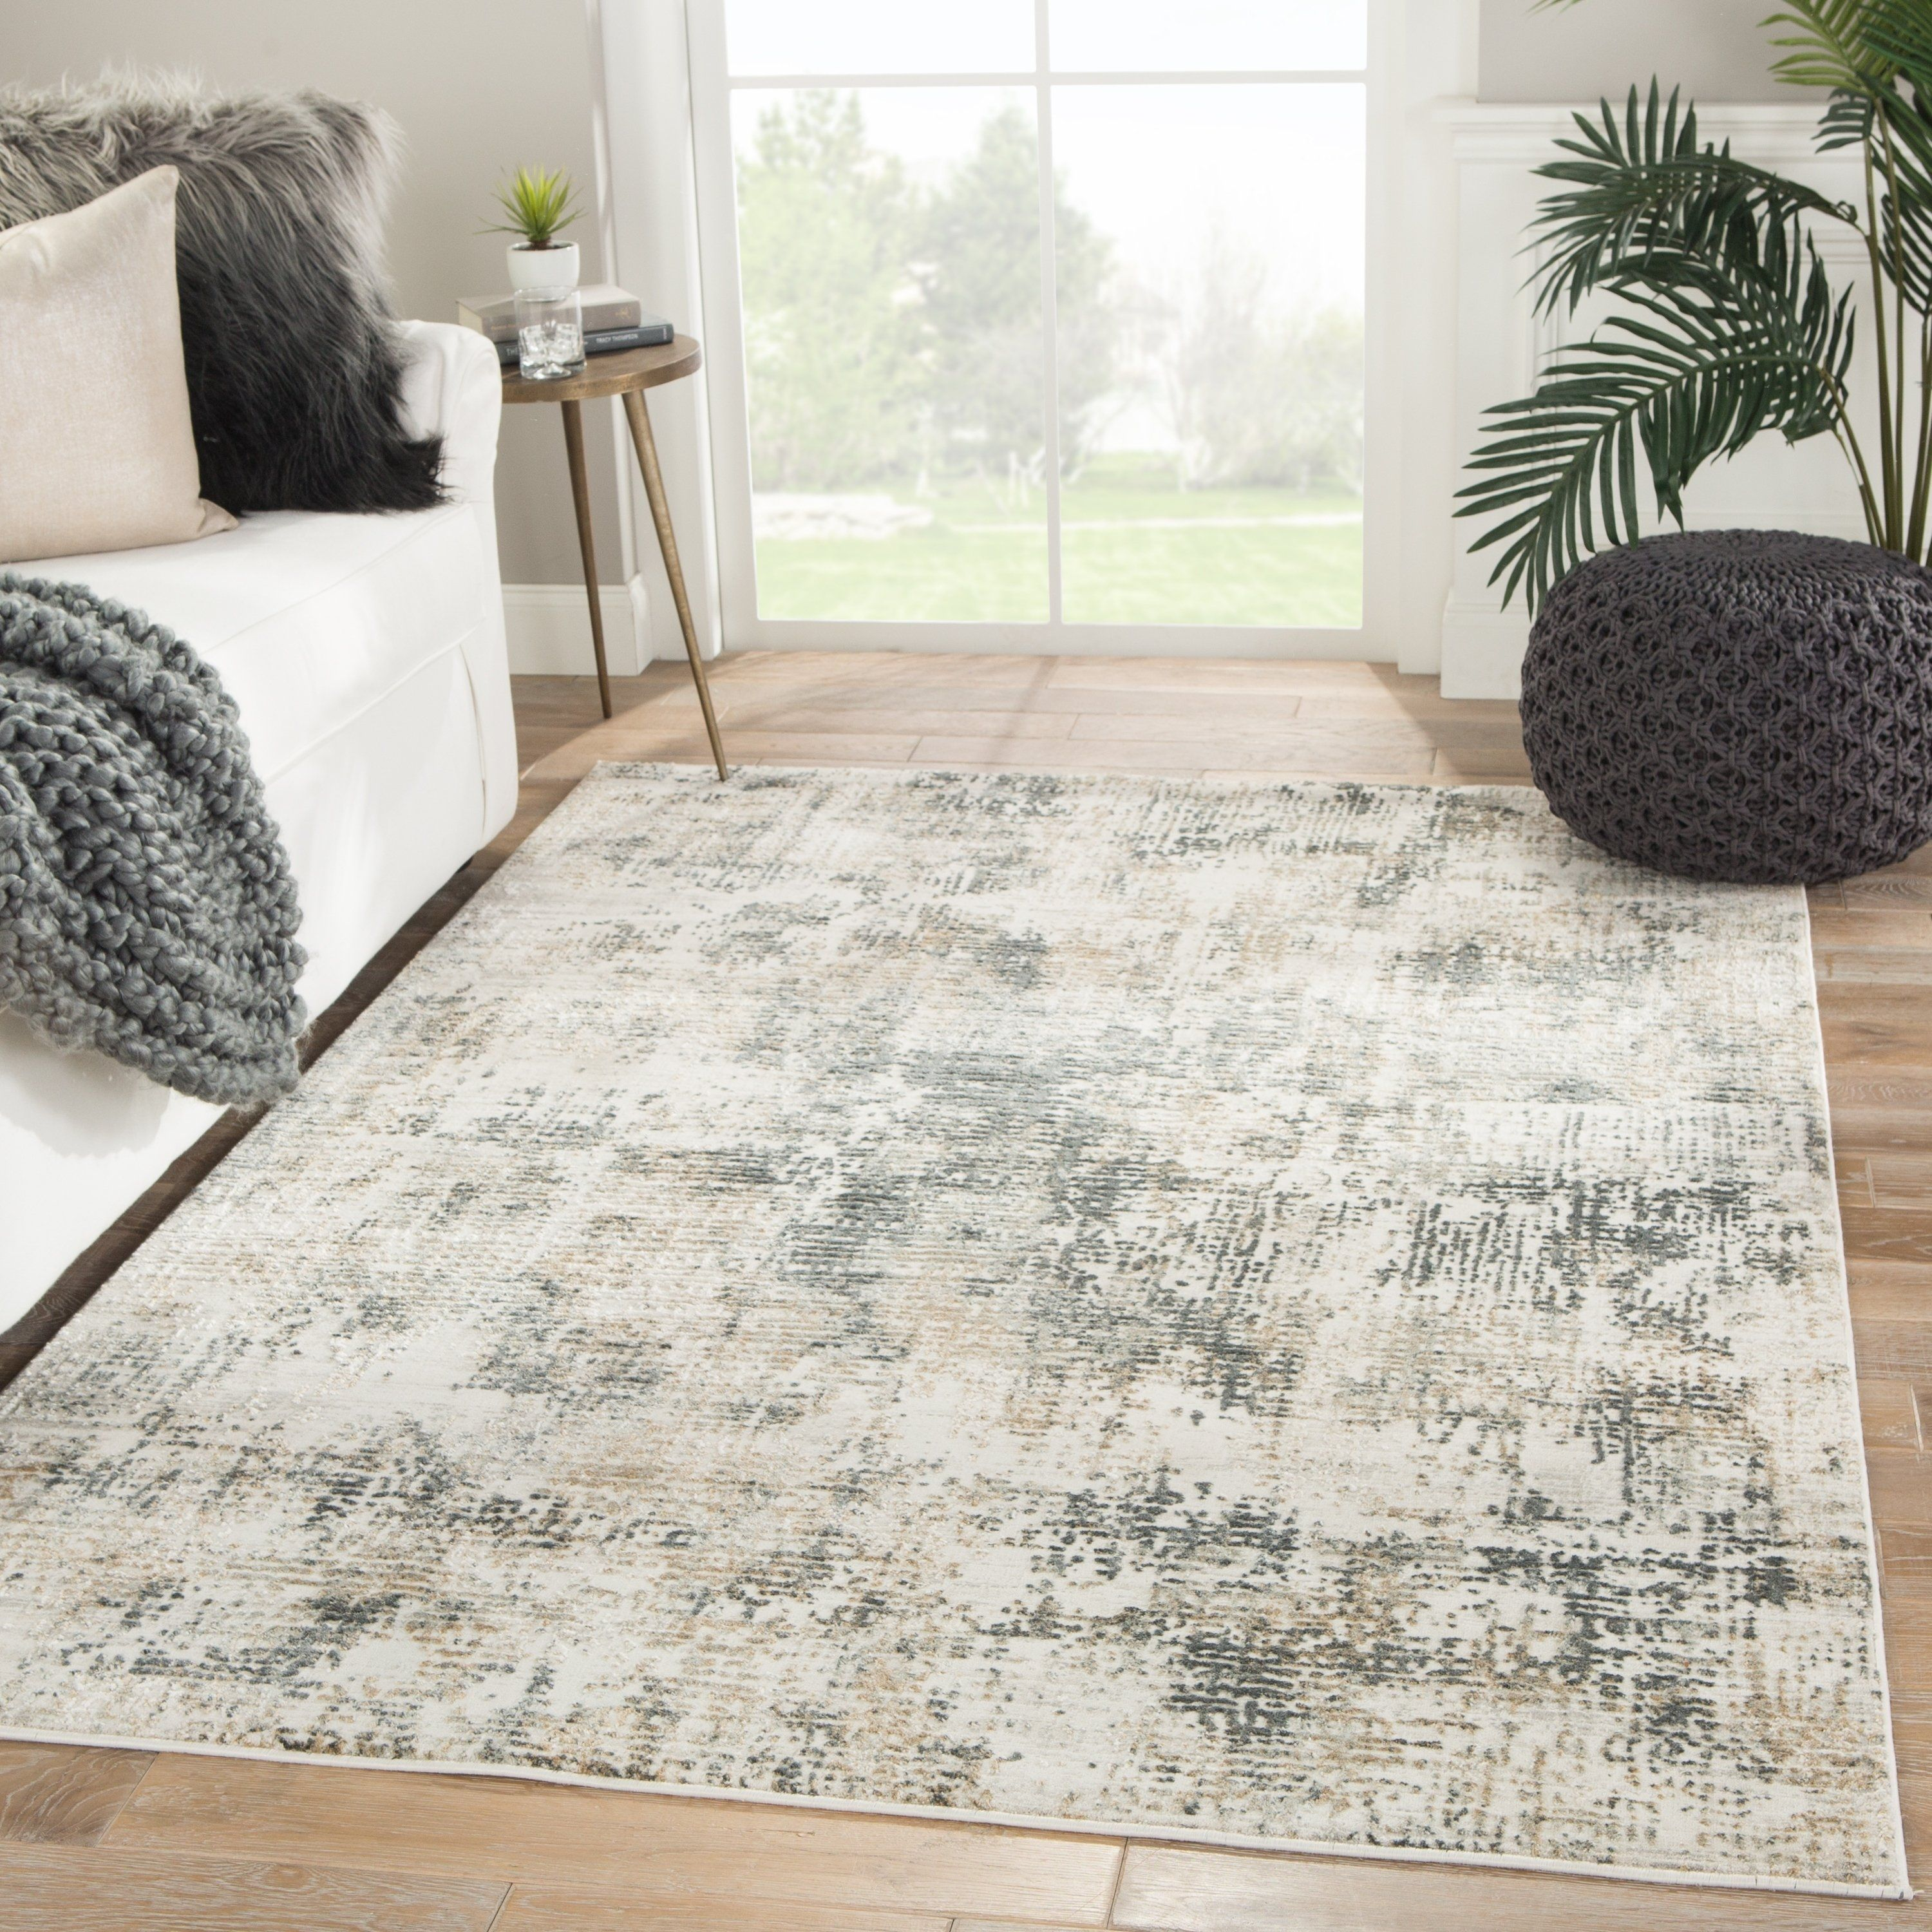 Caden Abstract Gray Ivory Area Rug 8 10 X 12 8 10 X 12 Grey Ivory Juniper Home In 2019 Area Rugs Rugs Natural Area Rugs